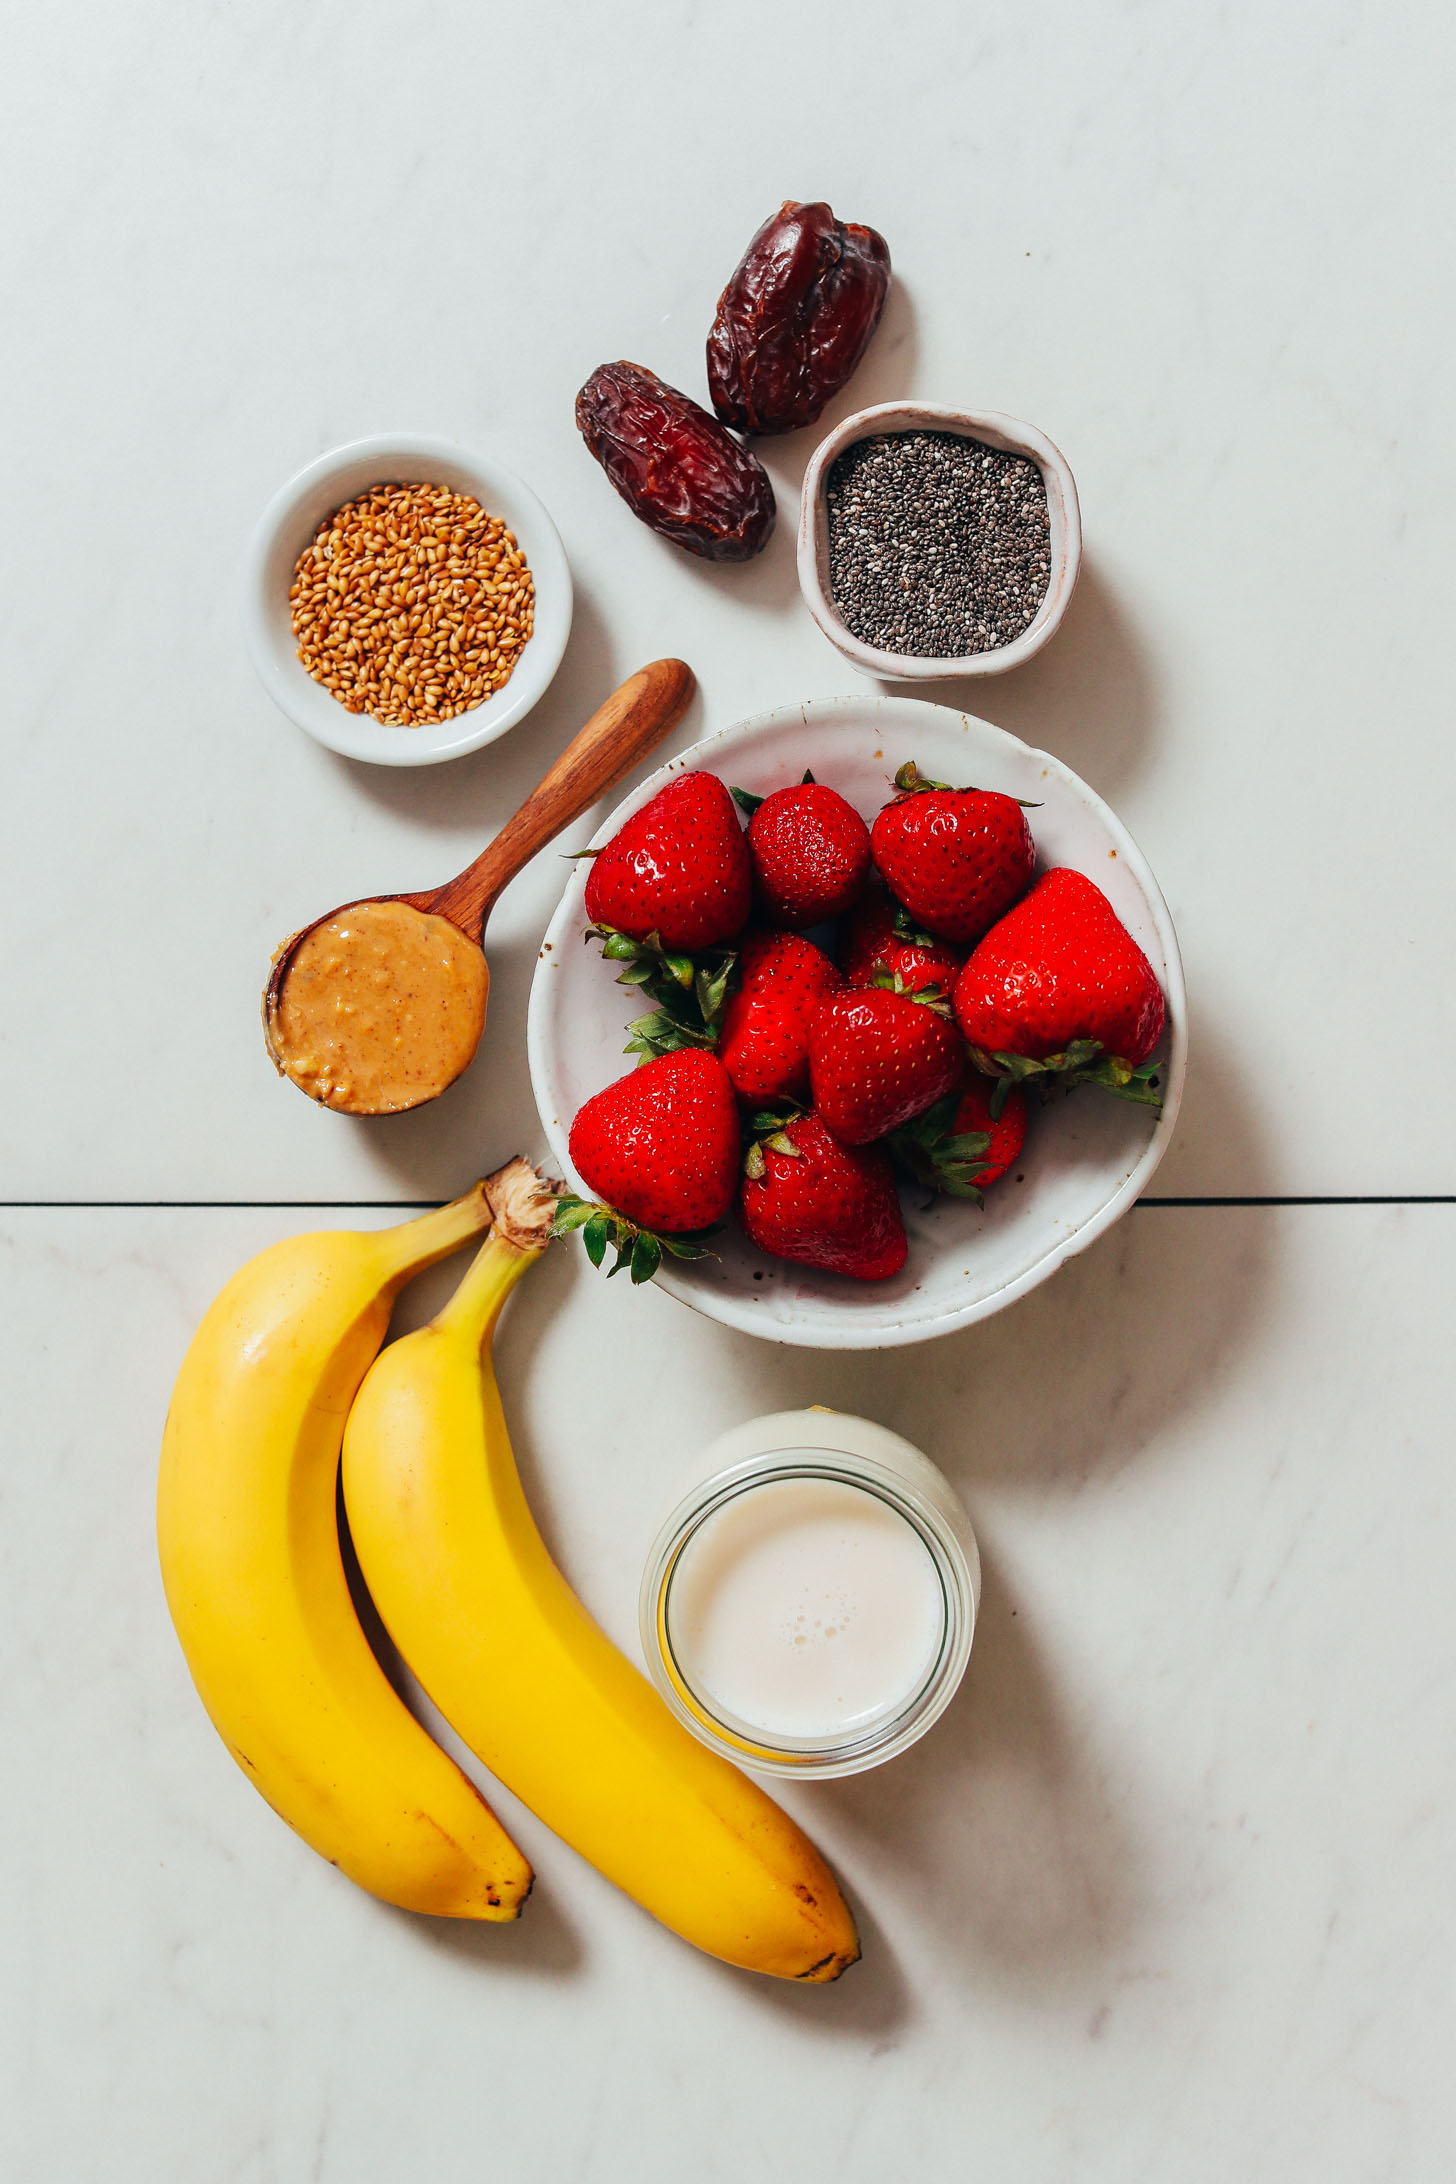 Dates, chia seeds, flax seeds, peanut butter, bananas, strawberries, and dairy-free milk